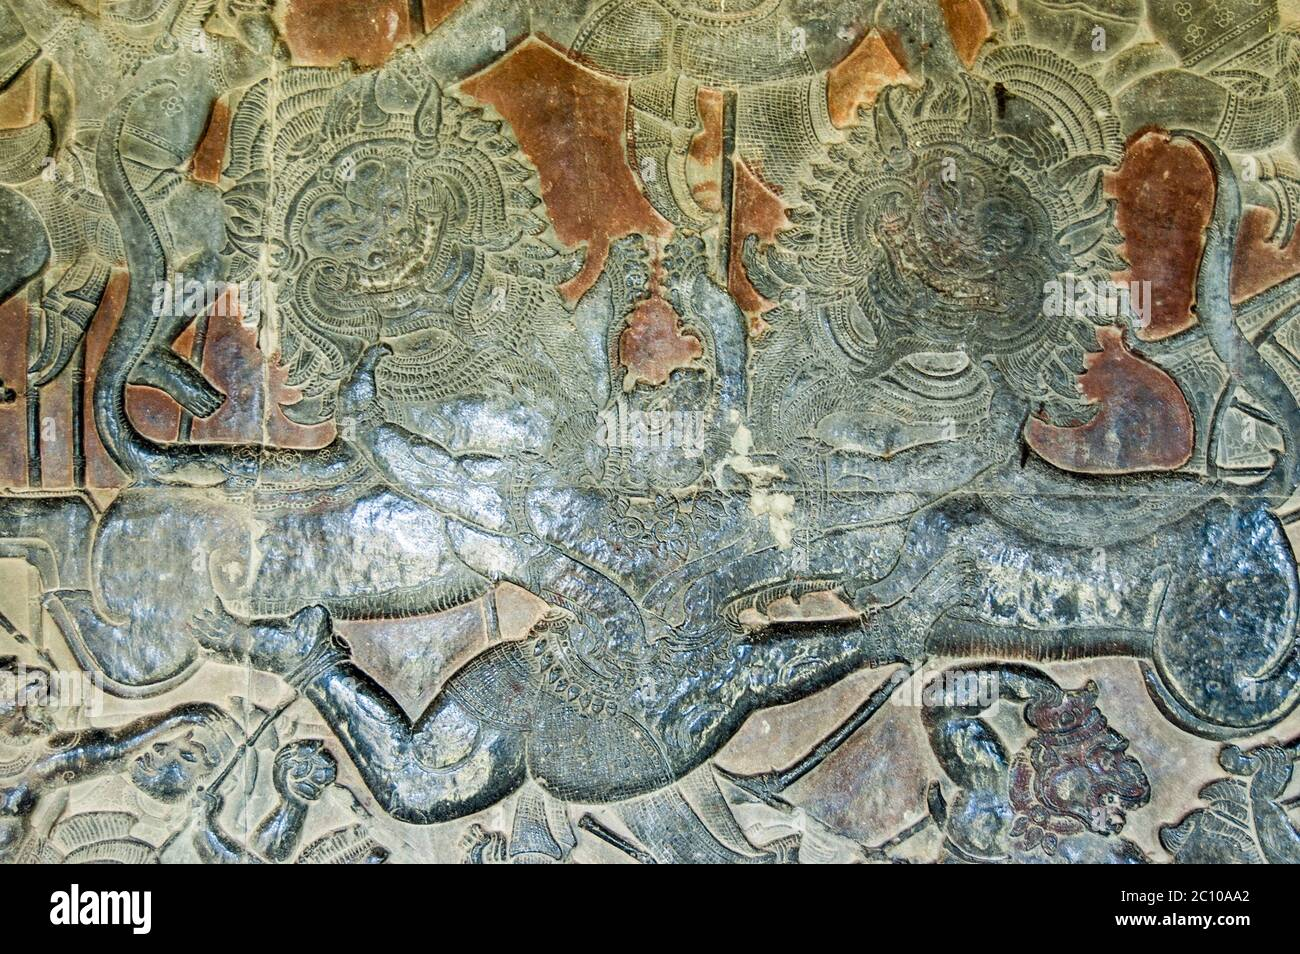 The Hindu monkey god Hanuman fighting two imperial lions in the Battle of Lanka. Wall of Angkor Wat temple, Angkor, Siem Reap, Cambodia. Stock Photo